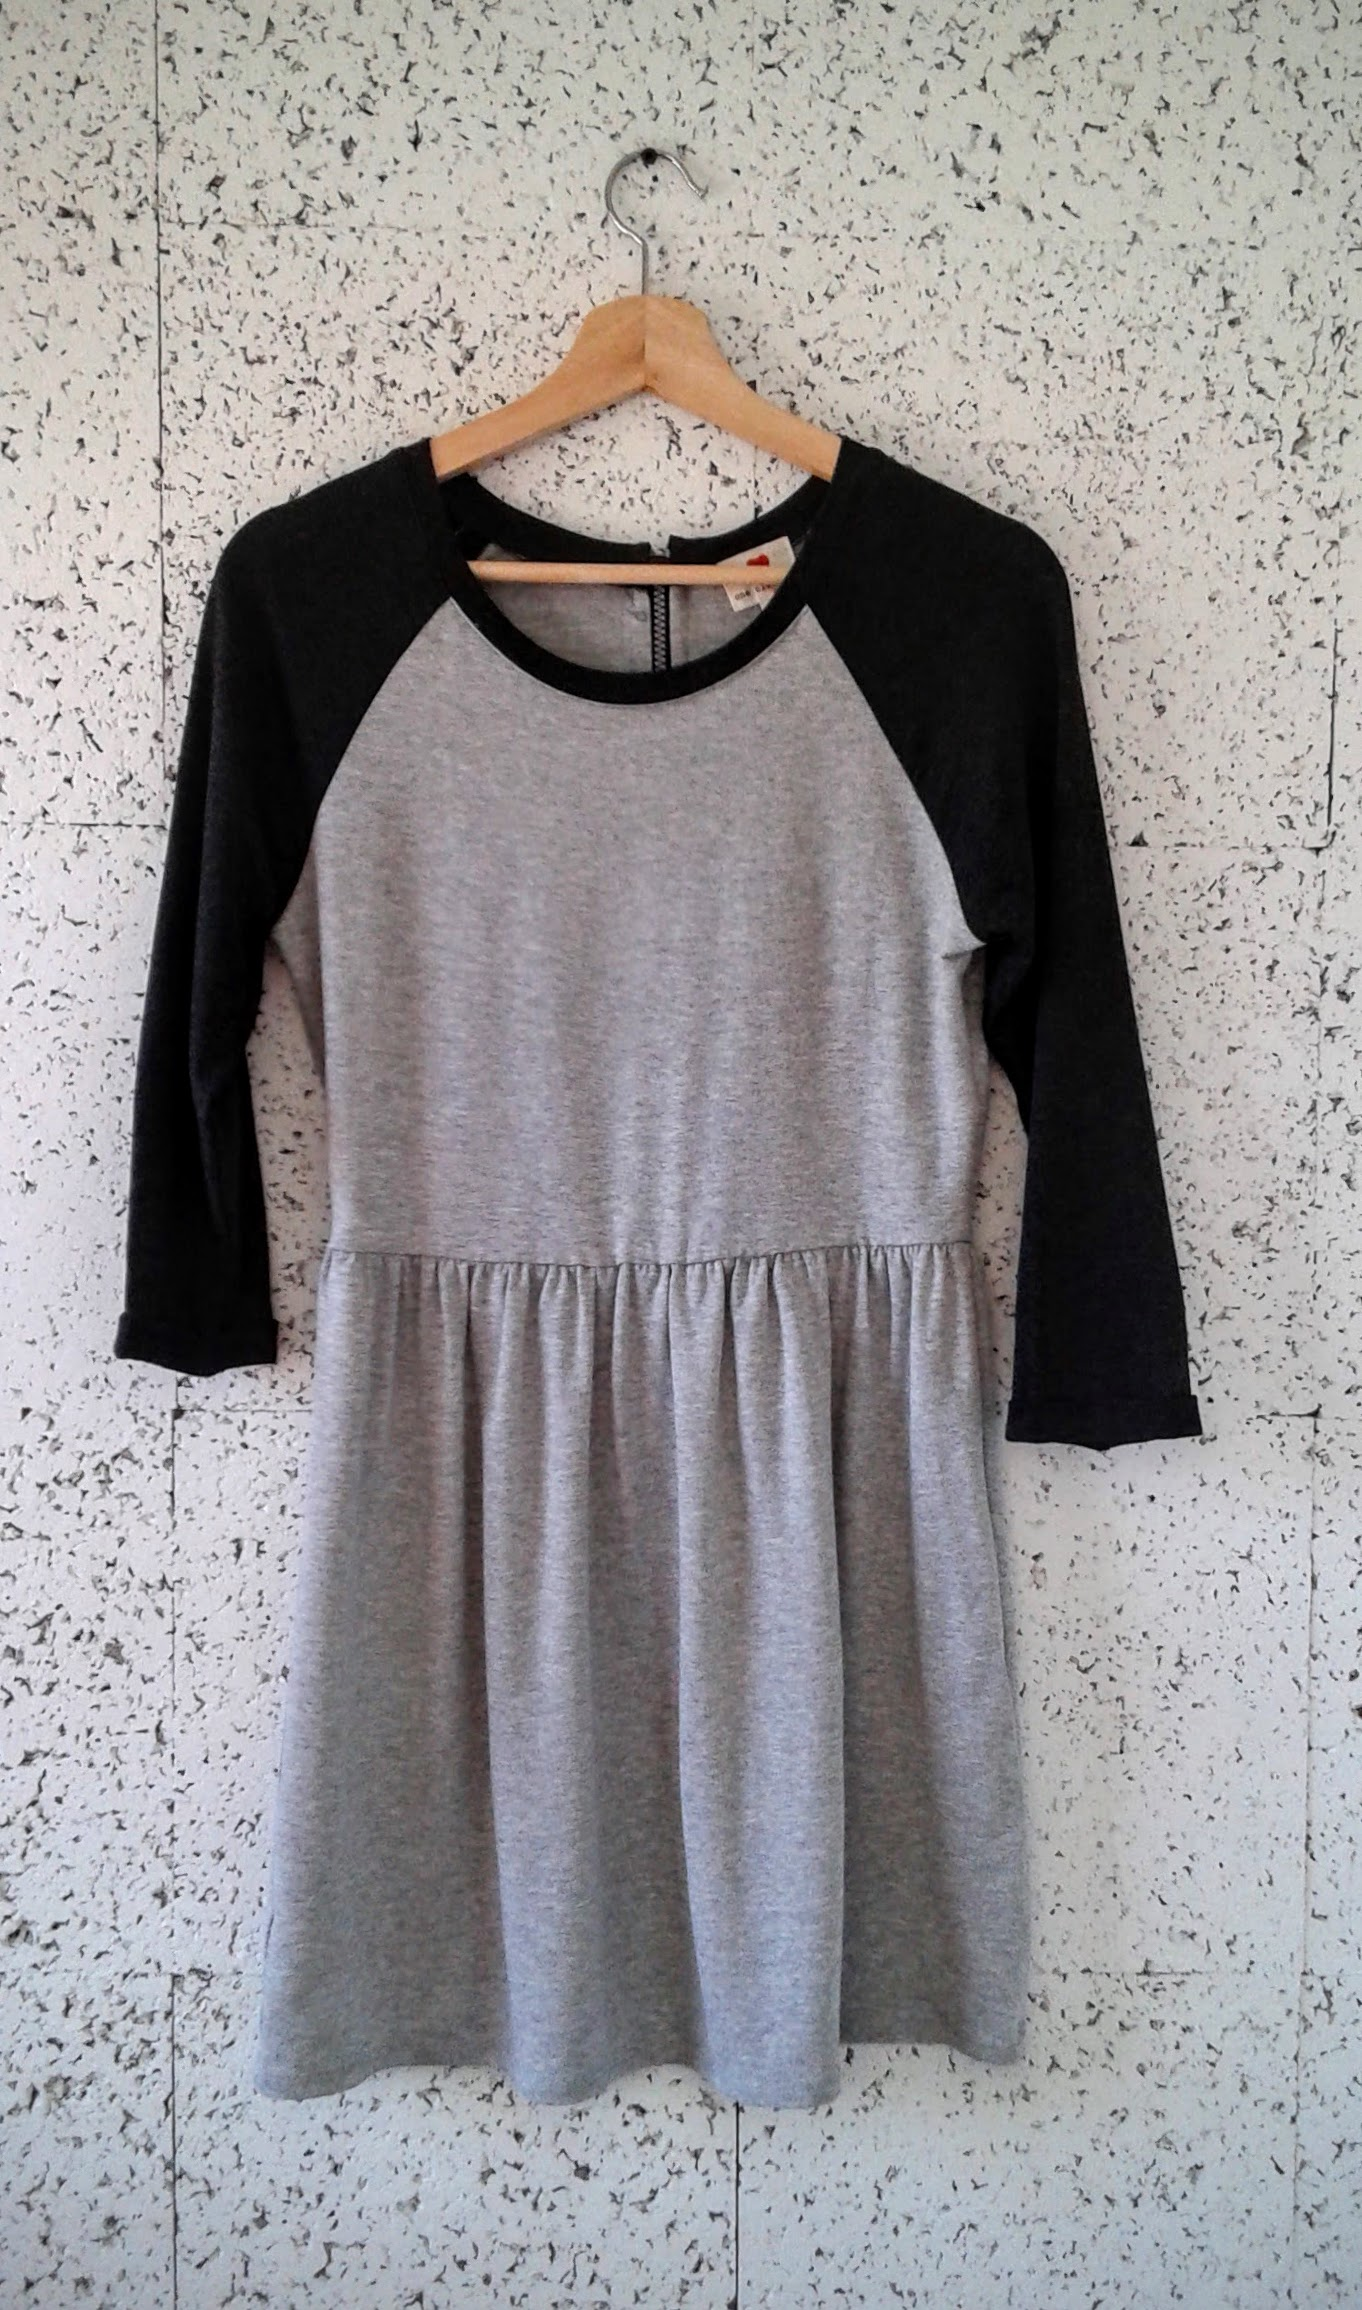 One Clothing dress; Size M, $24